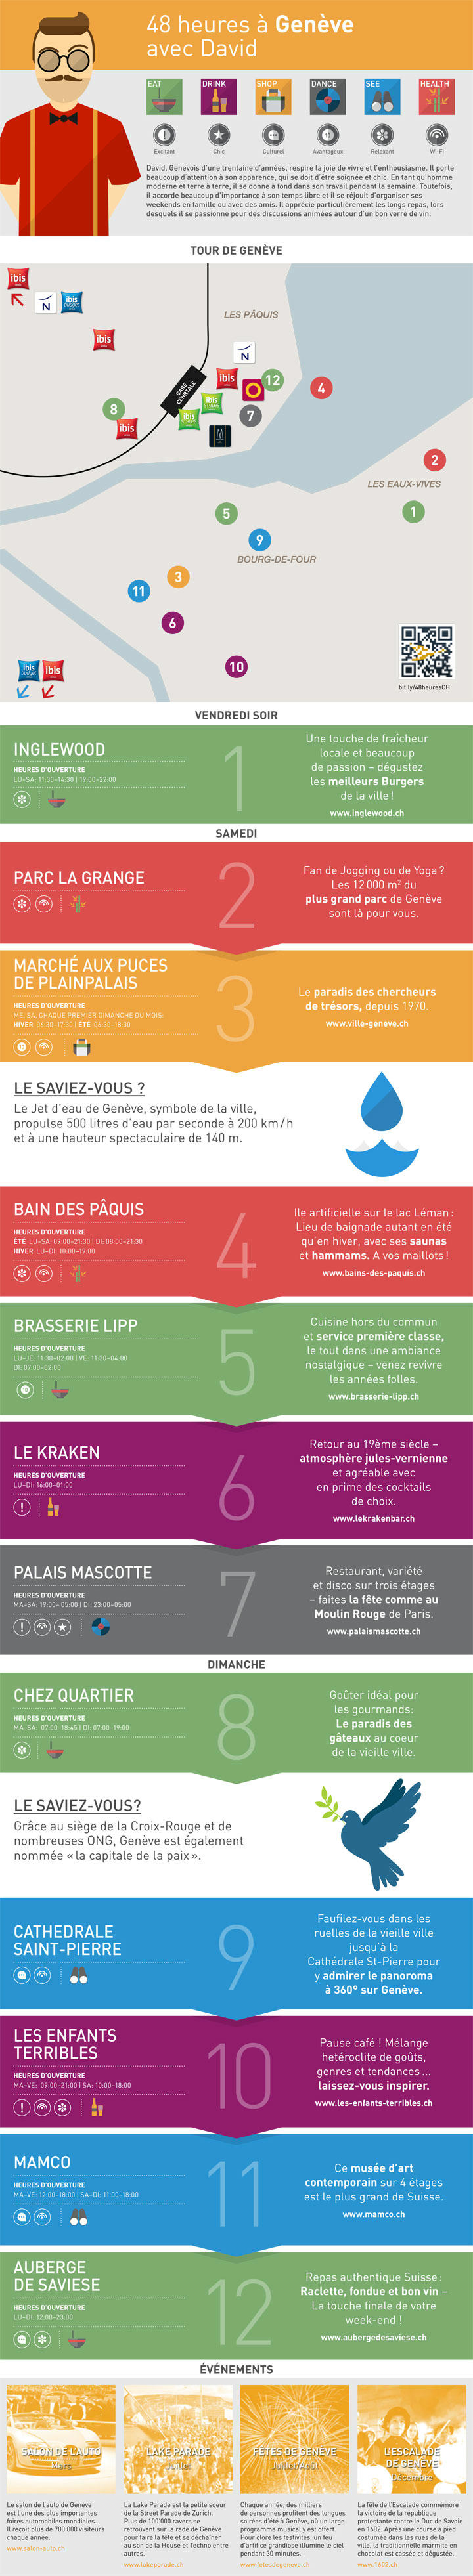 Geneve infographics by Accorhotels.com